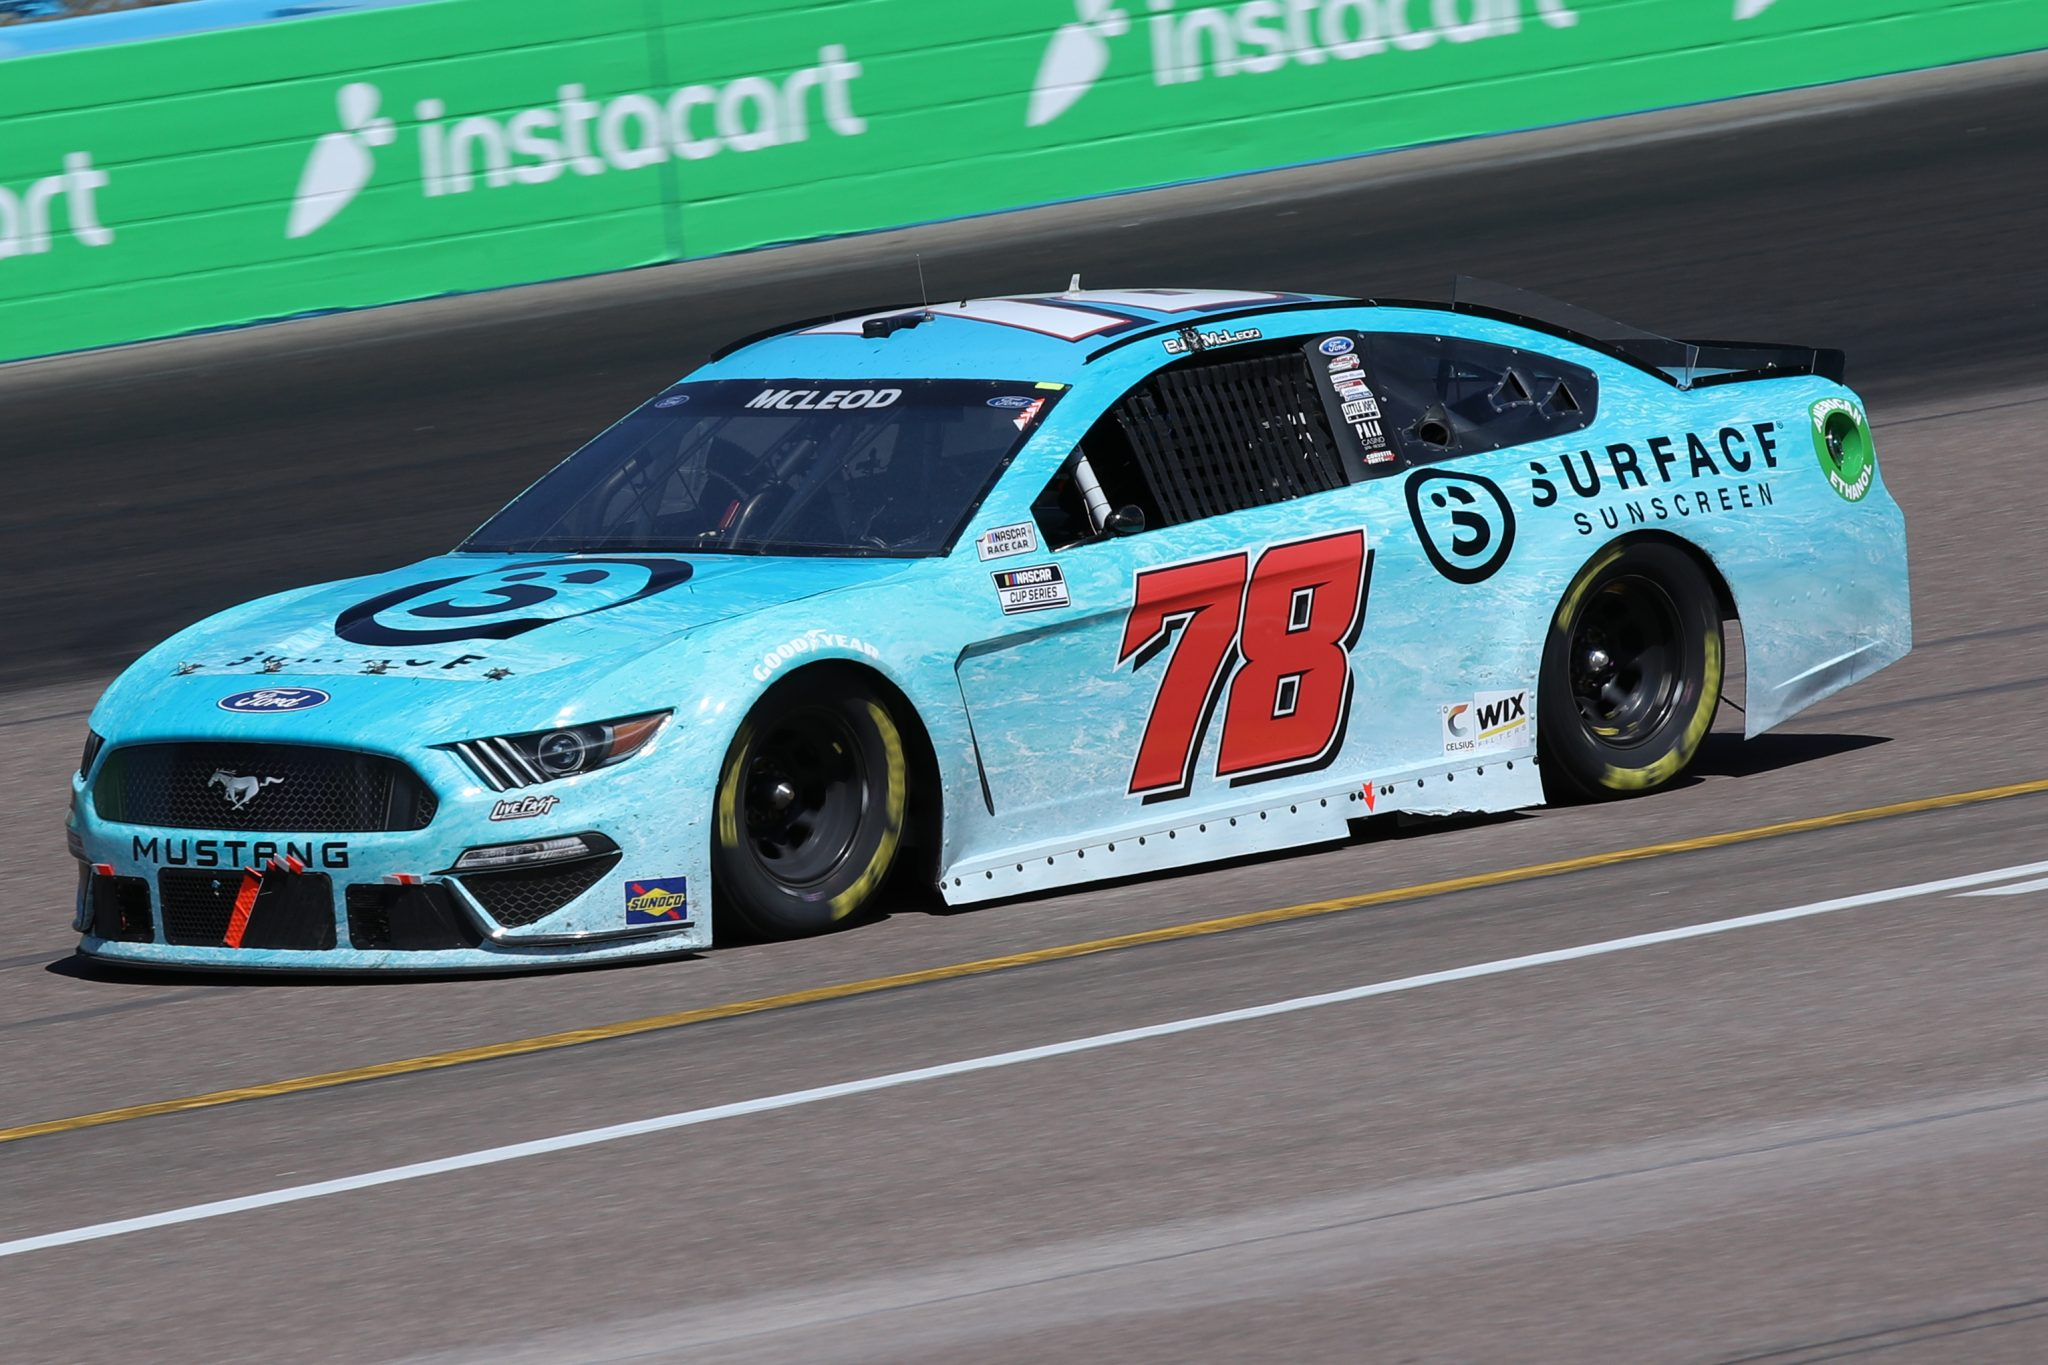 AVONDALE, ARIZONA - MARCH 14: BJ McLeod, driver of the #78 Surface Sunscreen Ford, drives during the NASCAR Cup Series Instacart 500 at Phoenix Raceway on March 14, 2021 in Avondale, Arizona. (Photo by Sean Gardner/Getty Images) | Getty Images